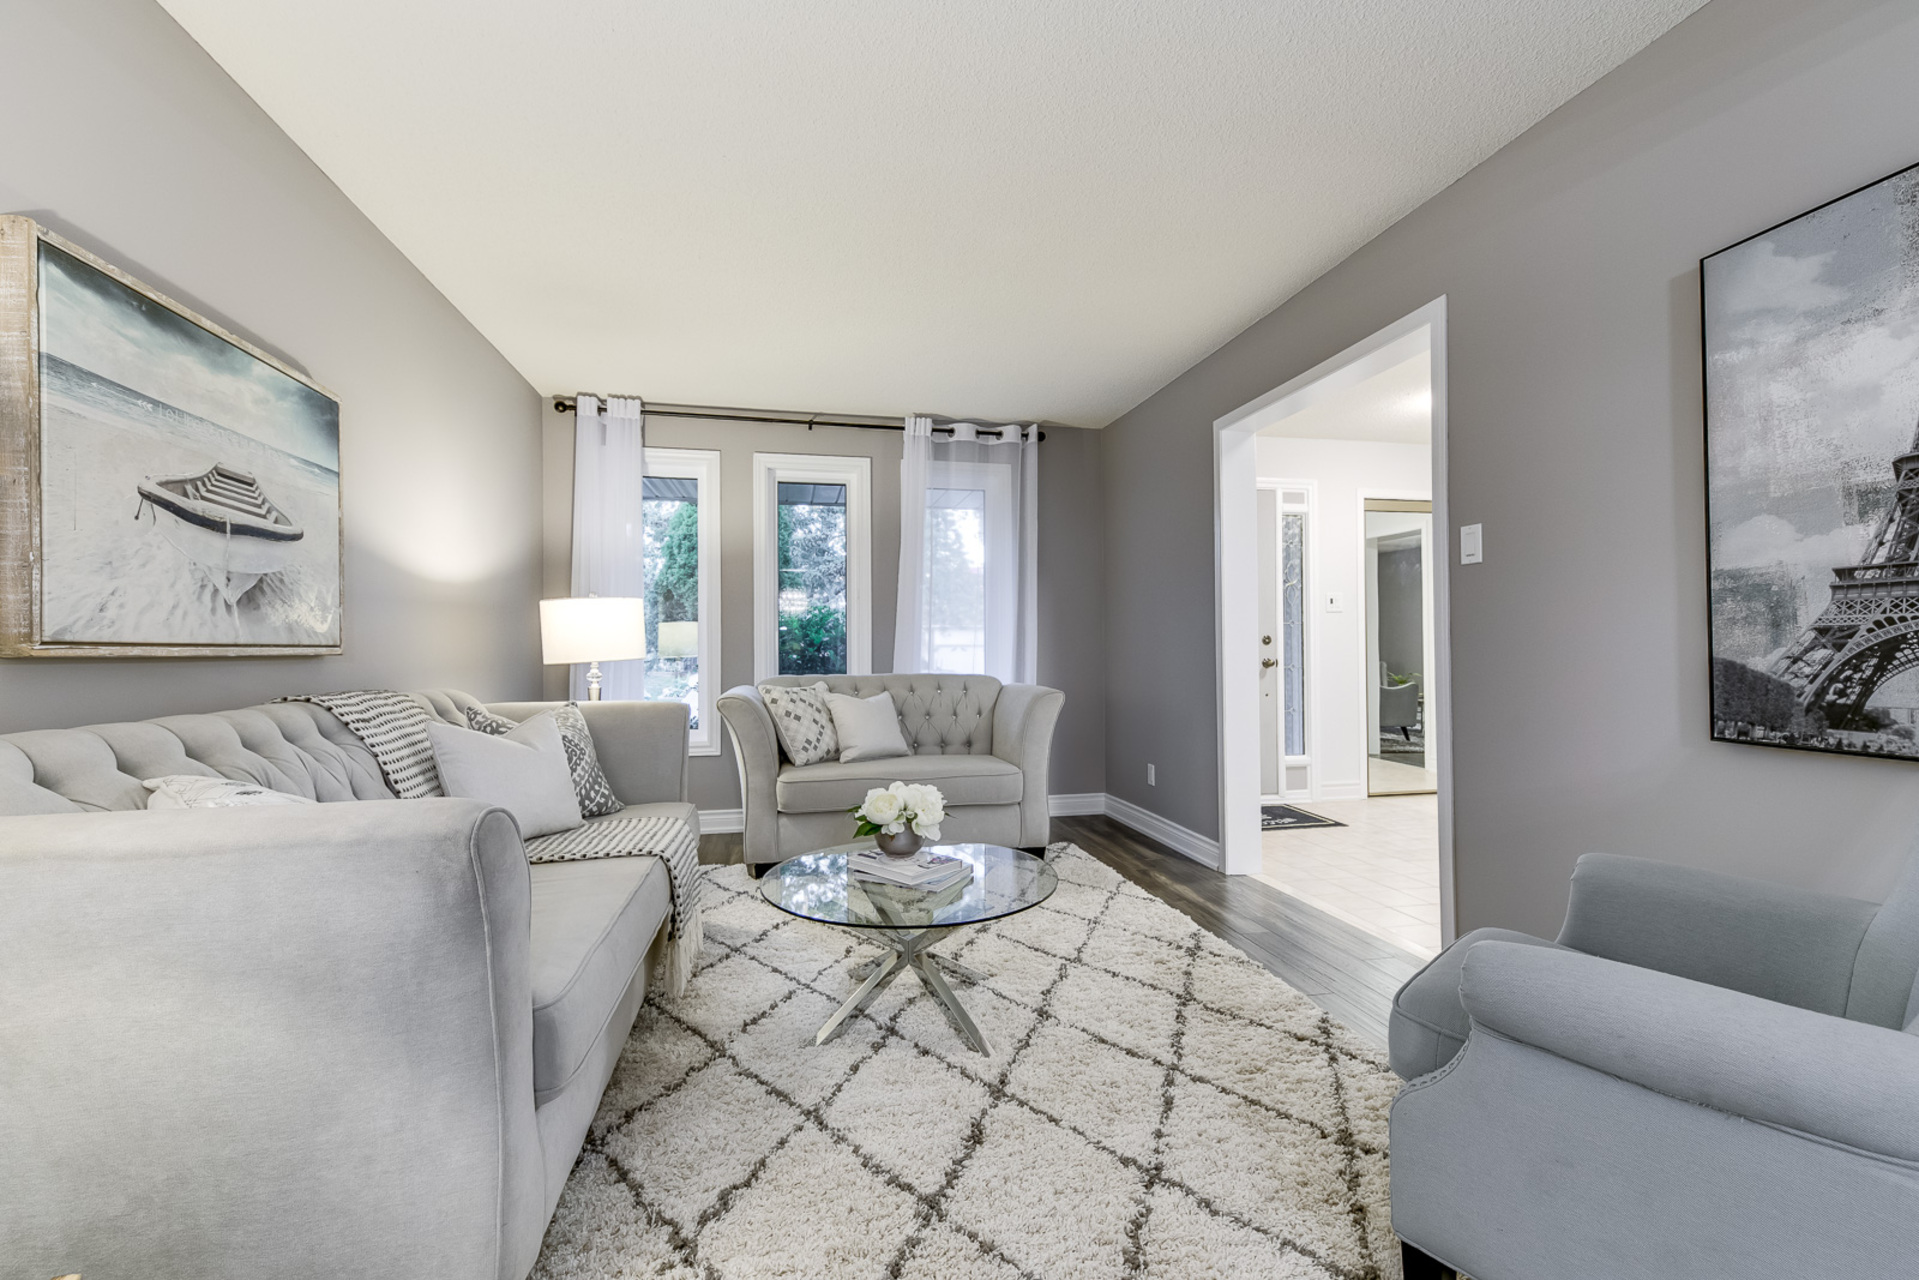 mls-10 at 4246 Wakefield Crescent, Creditview, Mississauga